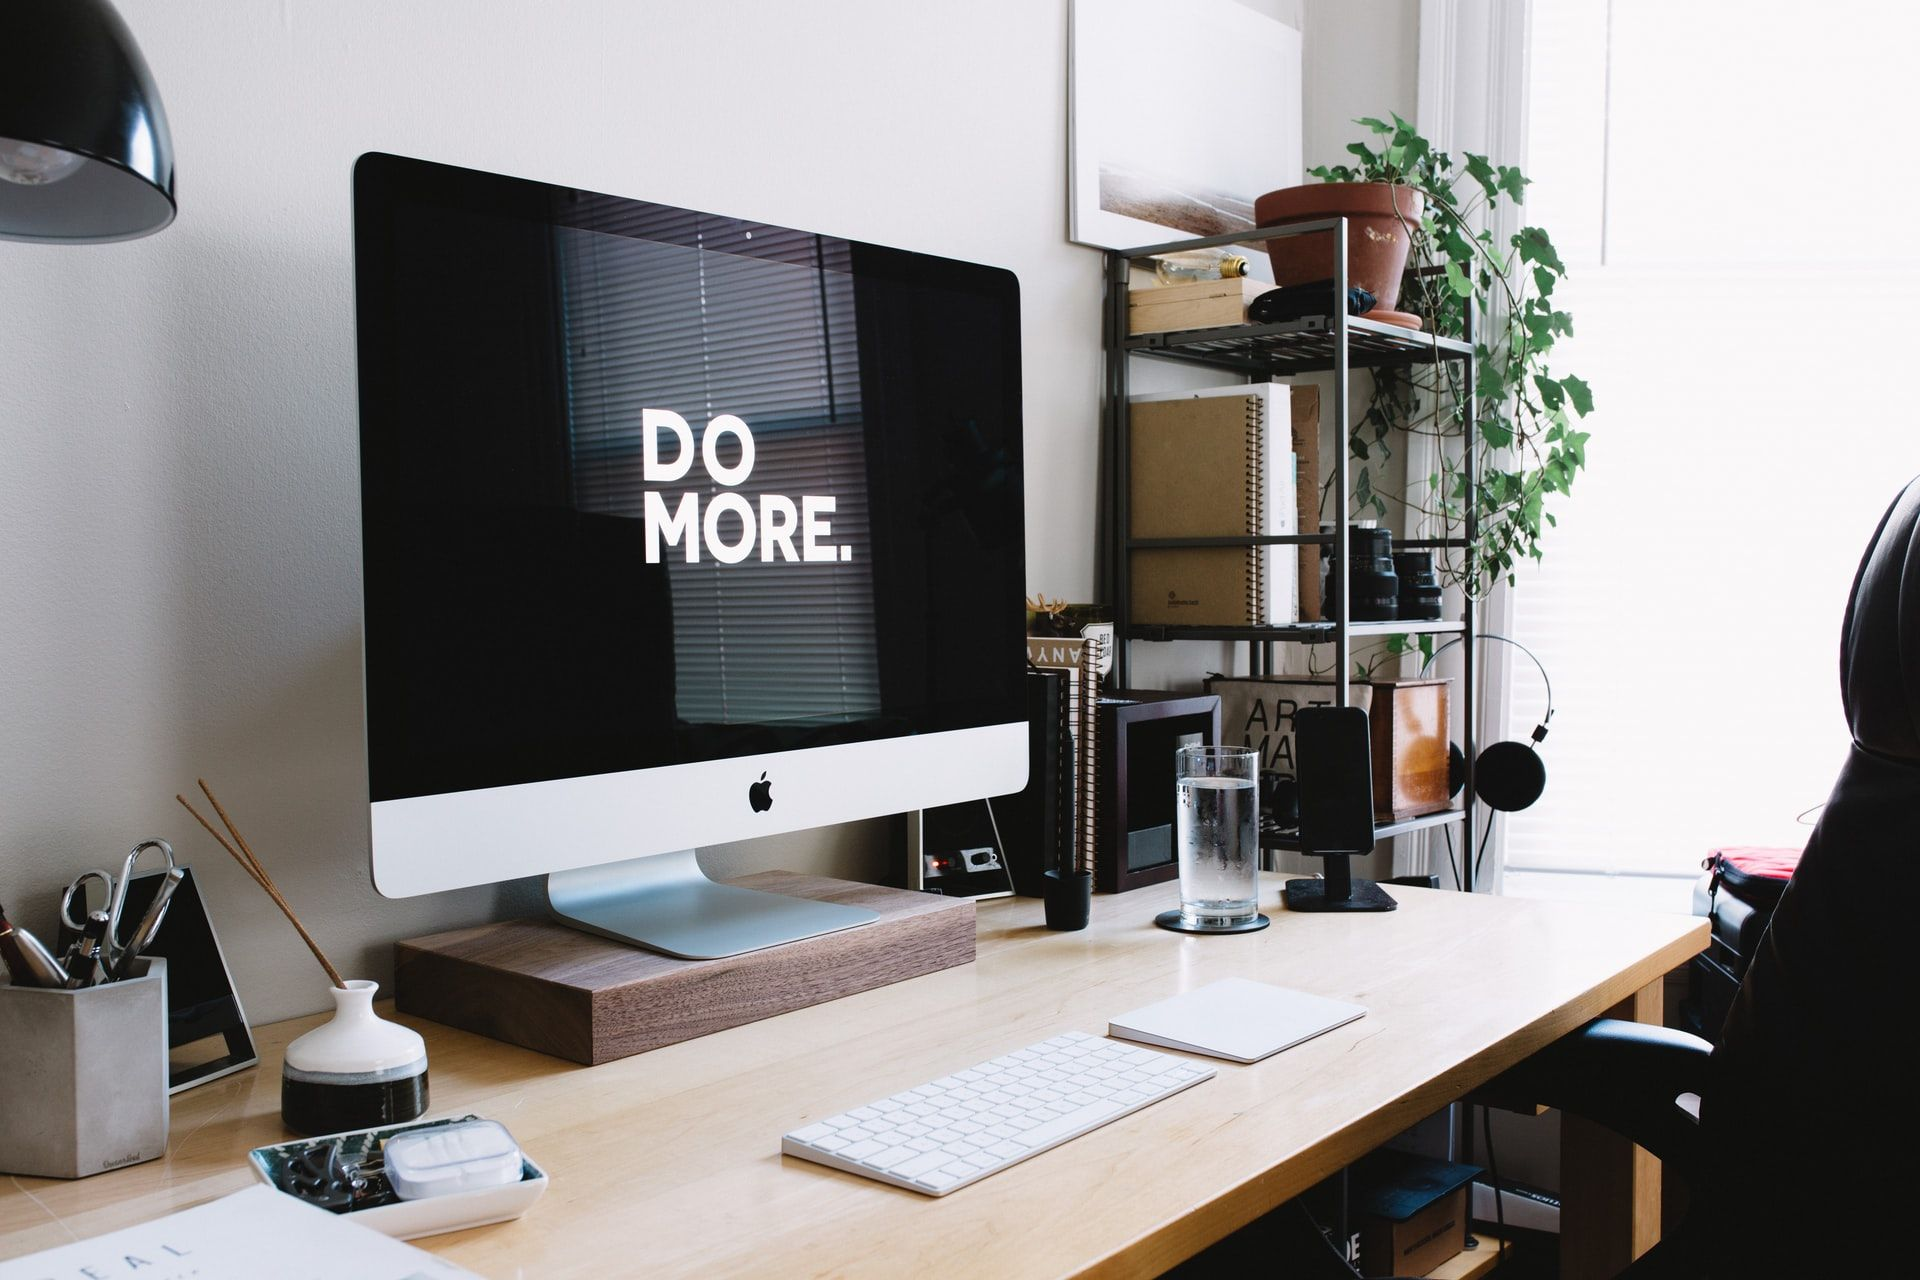 5 Focus And Productivity Apps to Optimise Your WFH Setup